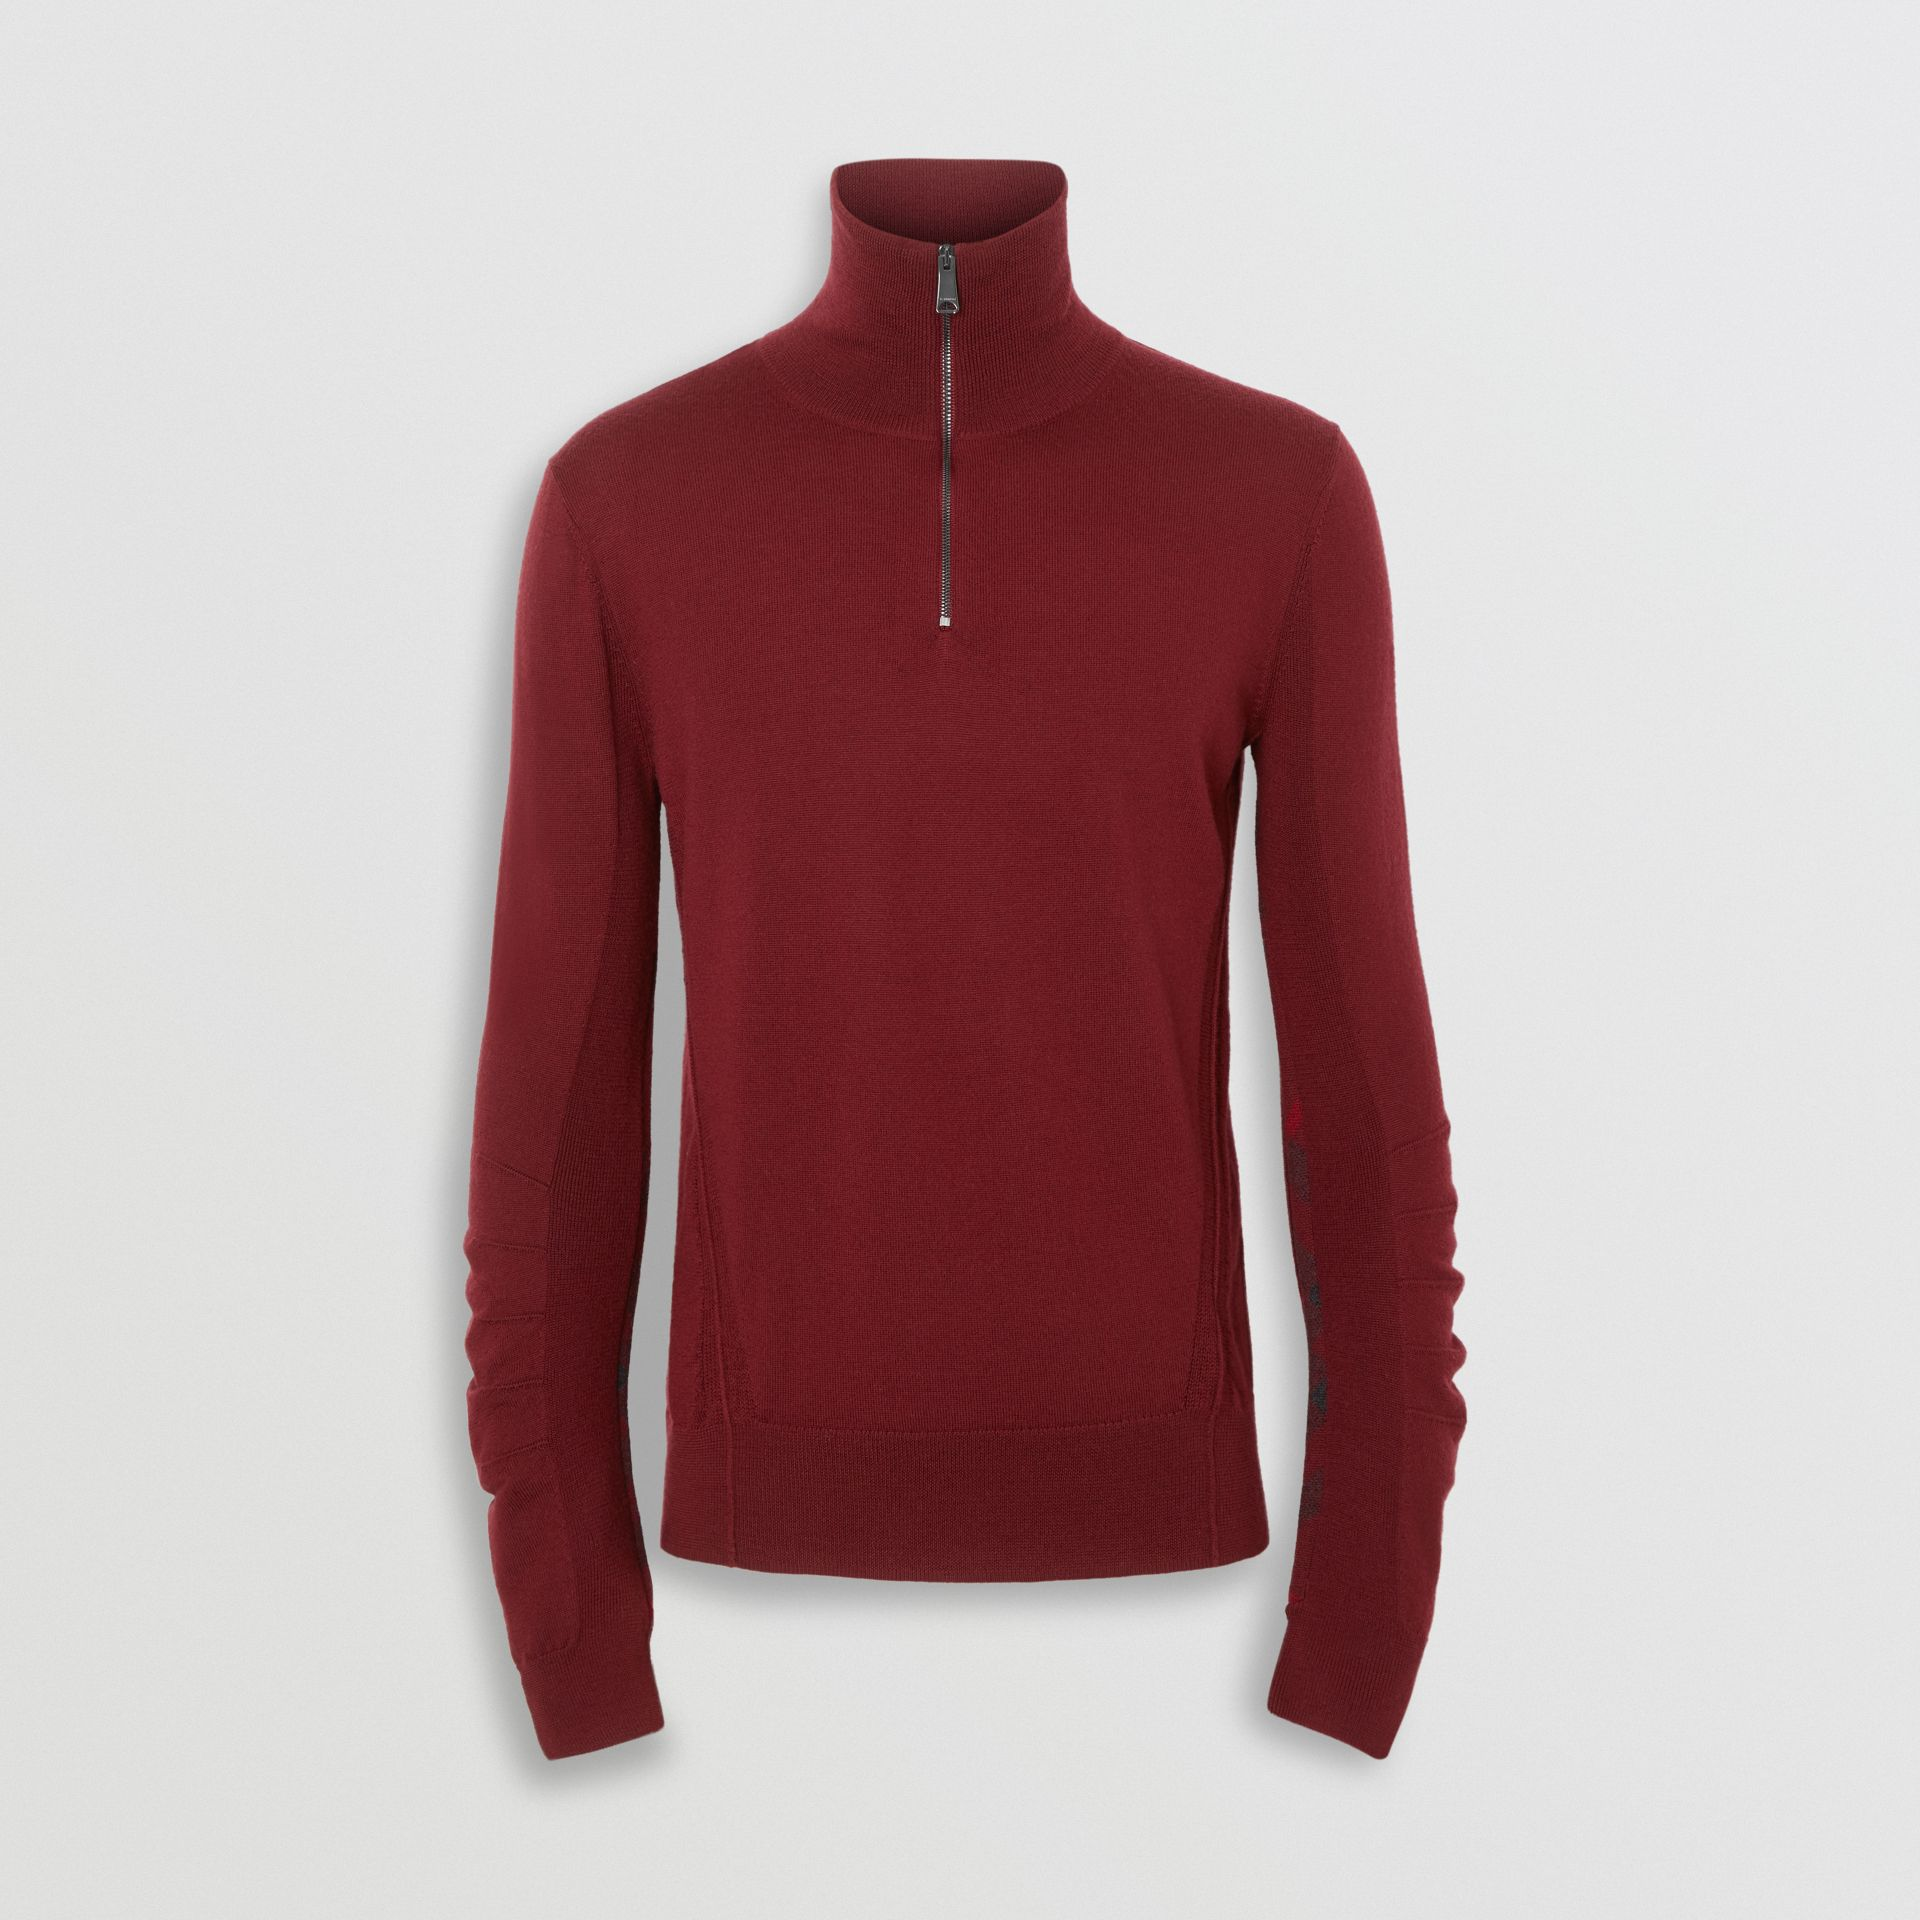 Merino Wool Half-zip Sweater in Burgundy - Men | Burberry Singapore - gallery image 3